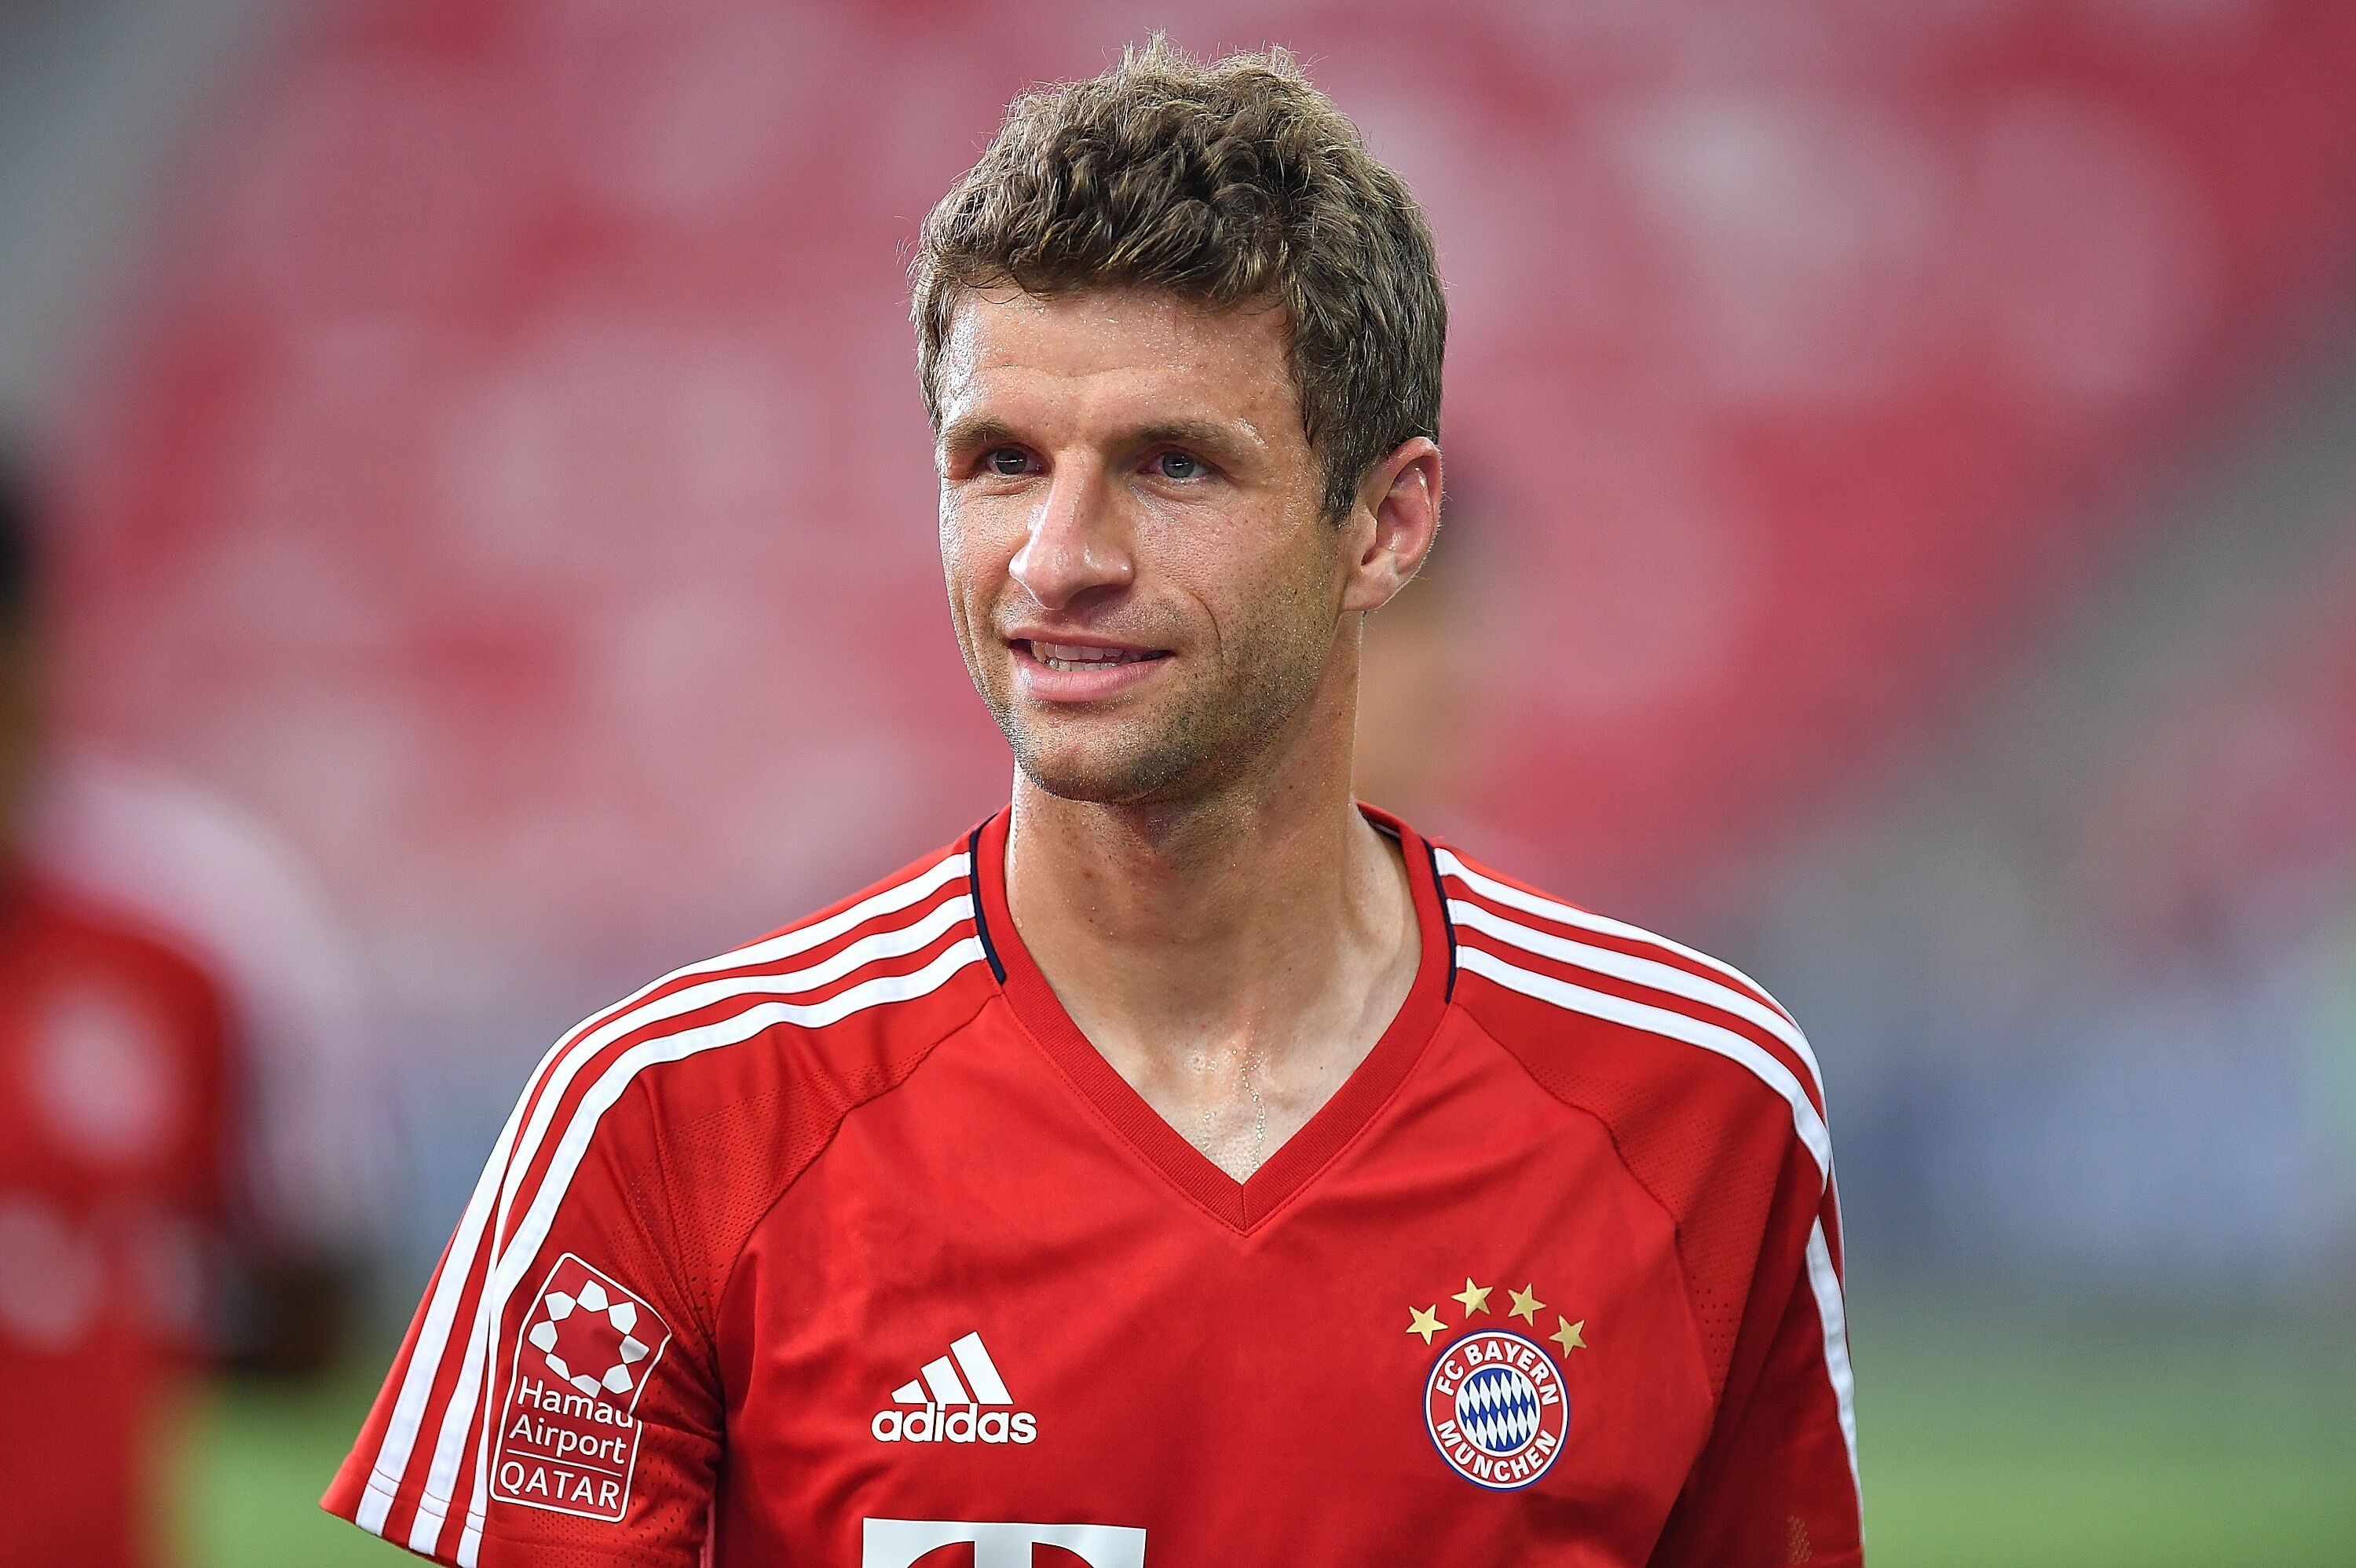 Chelsea FC could swap Willian for Thomas Muller would thrive at Blues